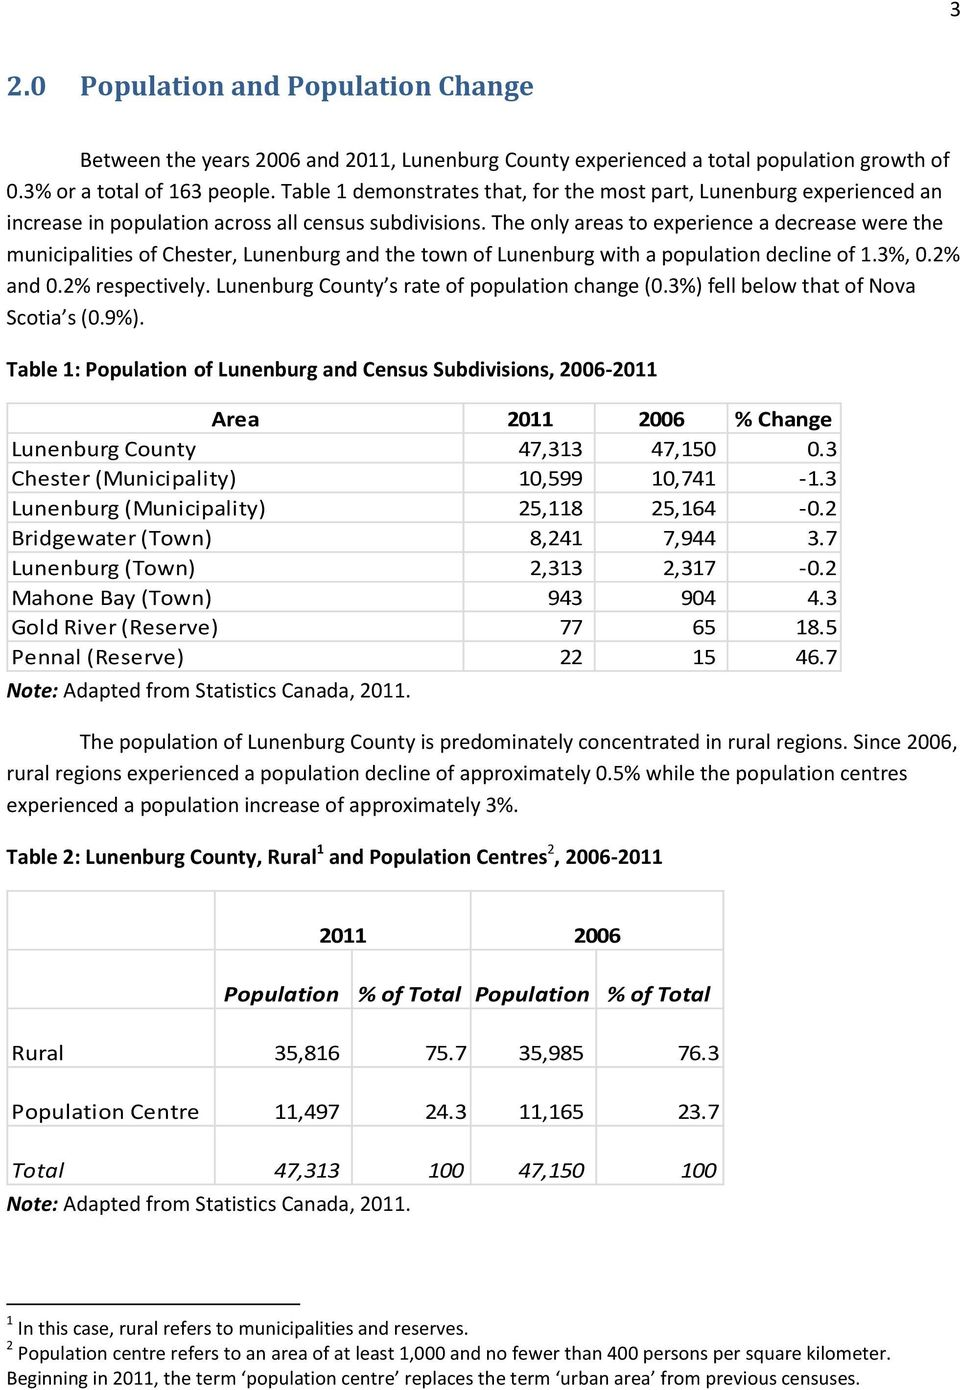 The only areas to experience a decrease were the municipalities of Chester, Lunenburg and the town of Lunenburg with a population decline of 1.3%, 0.2% and 0.2% respectively.